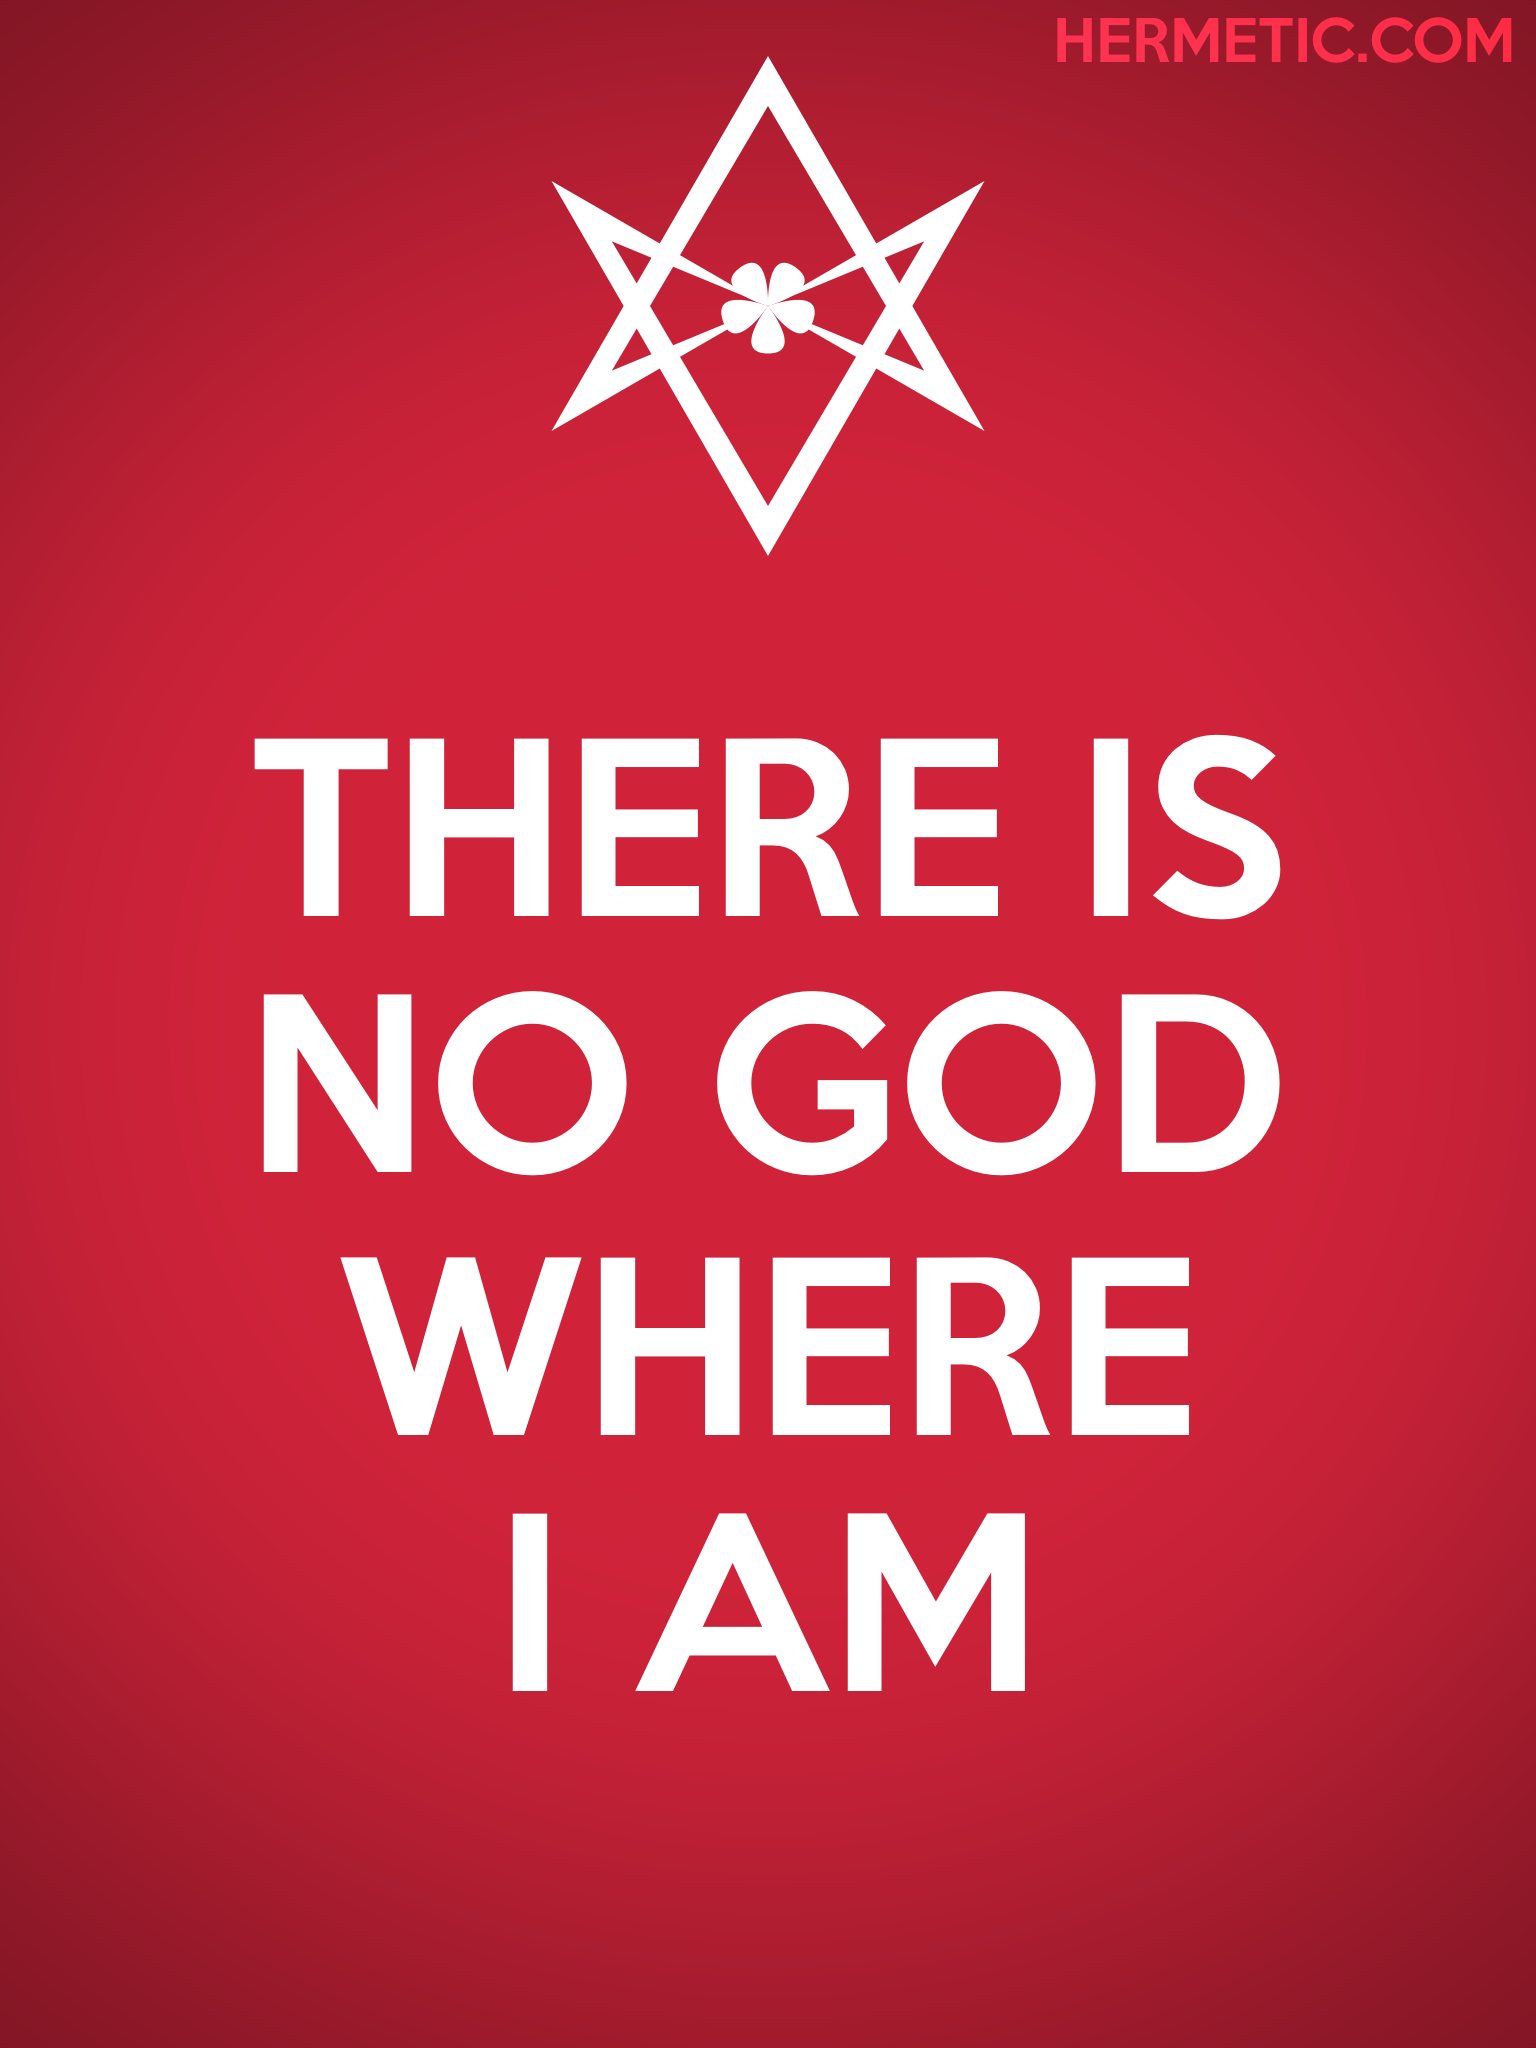 Unicursal NO GOD WHERE I AM Propaganda Poster from Hermetic Library Office of the Ministry of Information